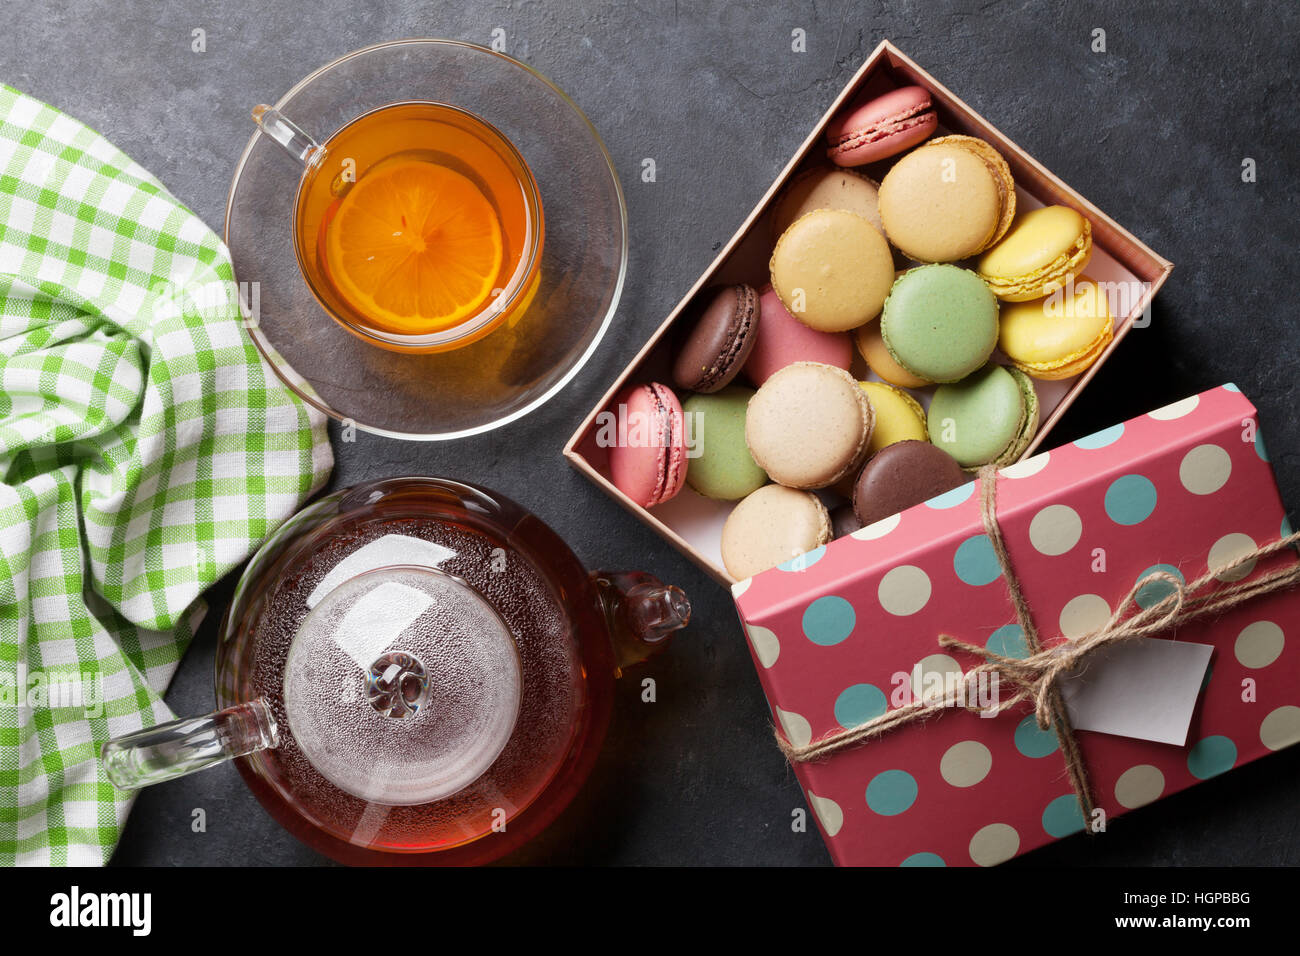 Tea cup, teapot and macaroons gift box on stone table. Top view - Stock Image